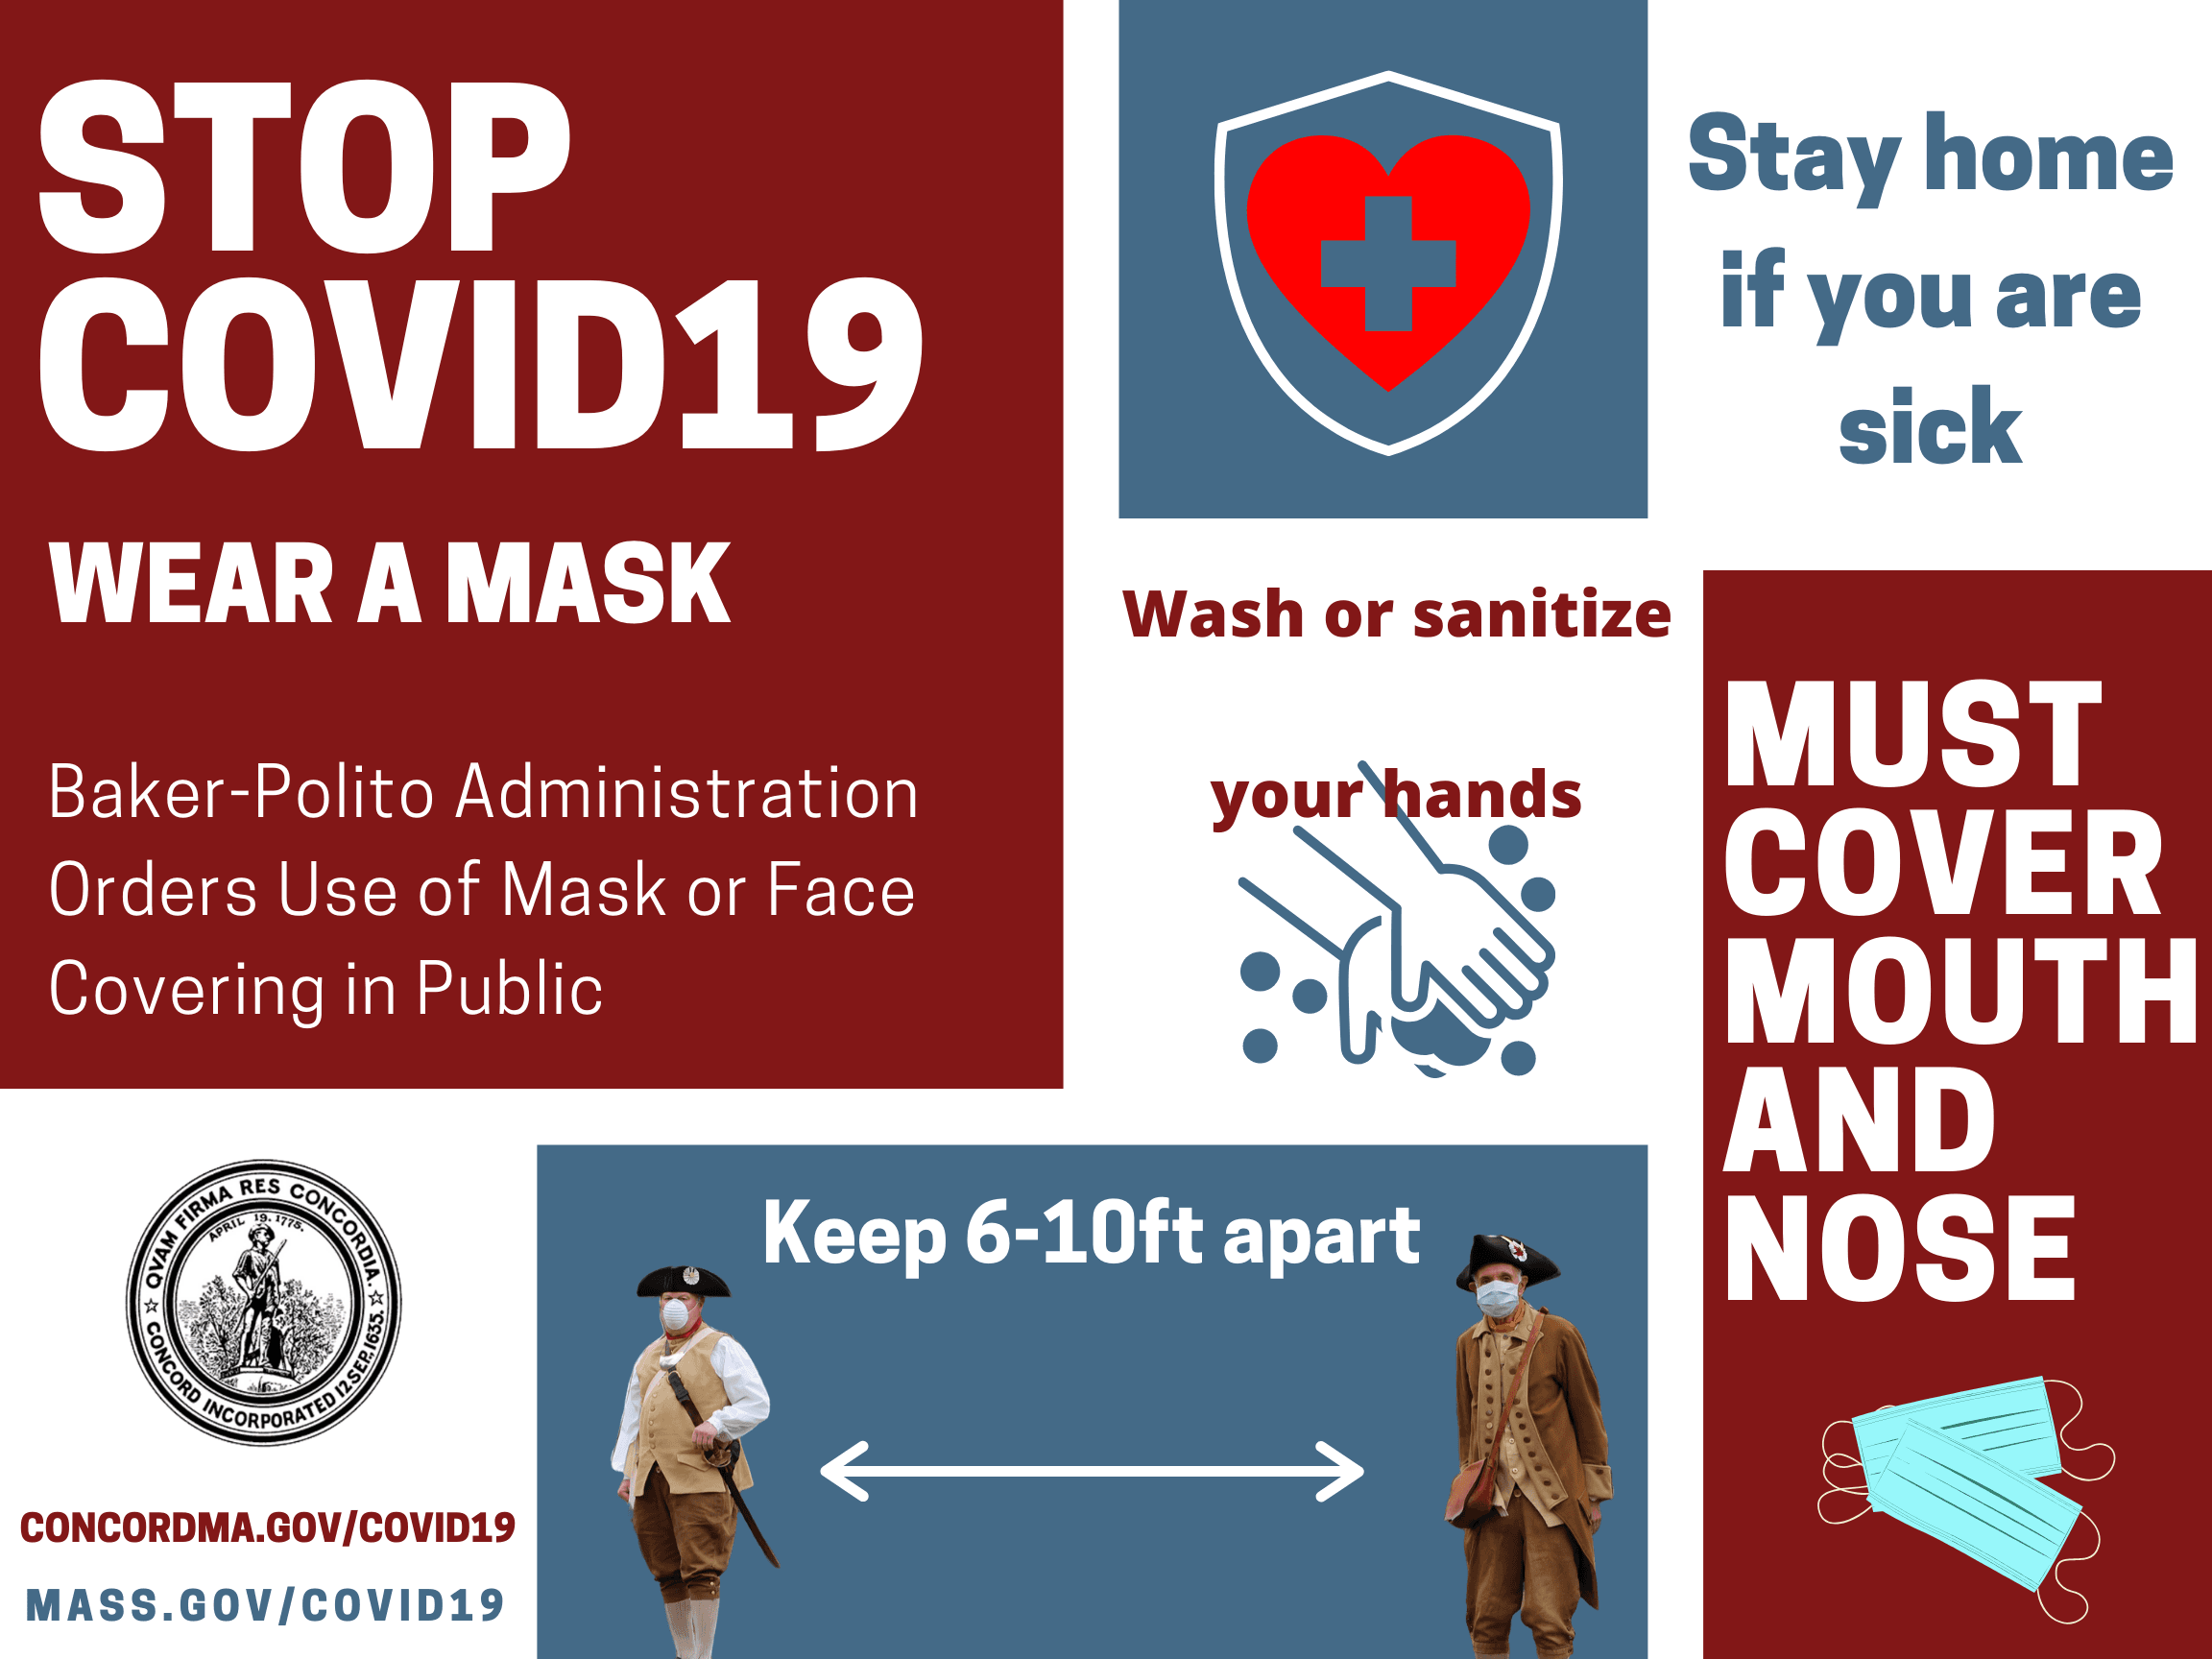 COVID poster with wear a mask, wash your hands, keep your distance